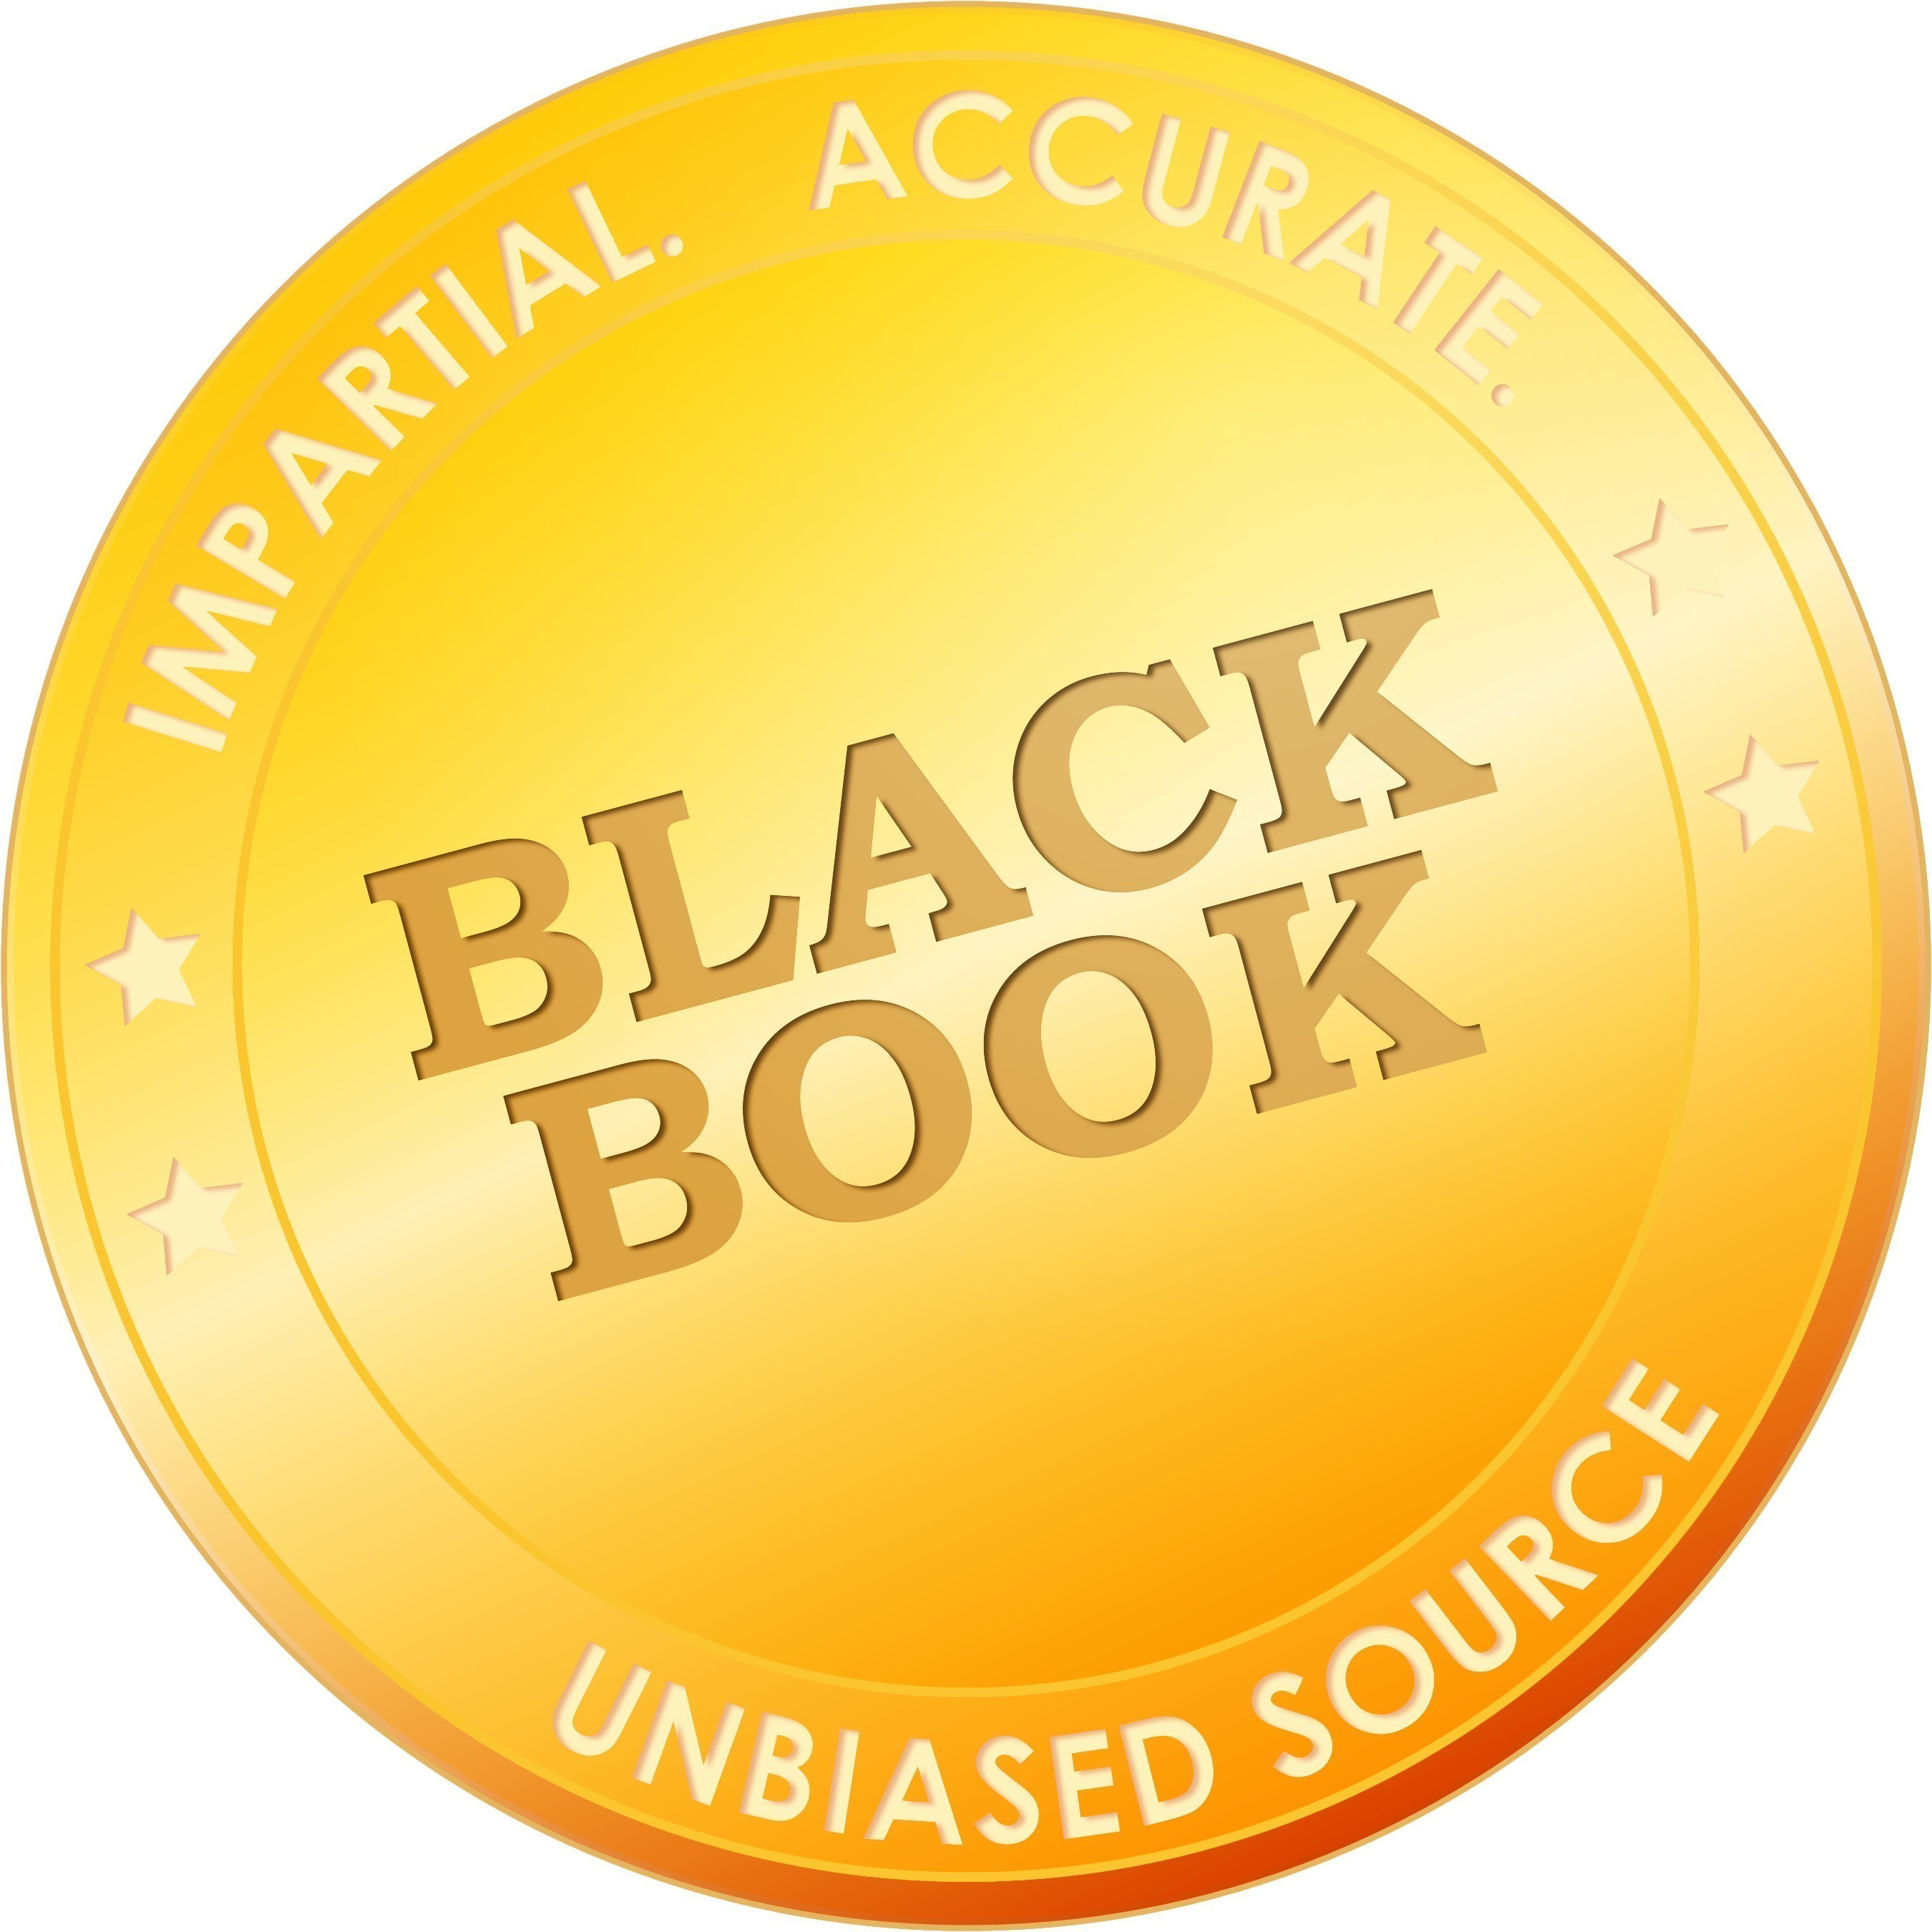 2015 Top Black Book Electronic Health Records Systems Announced for Gastroenterology (GI) Practices